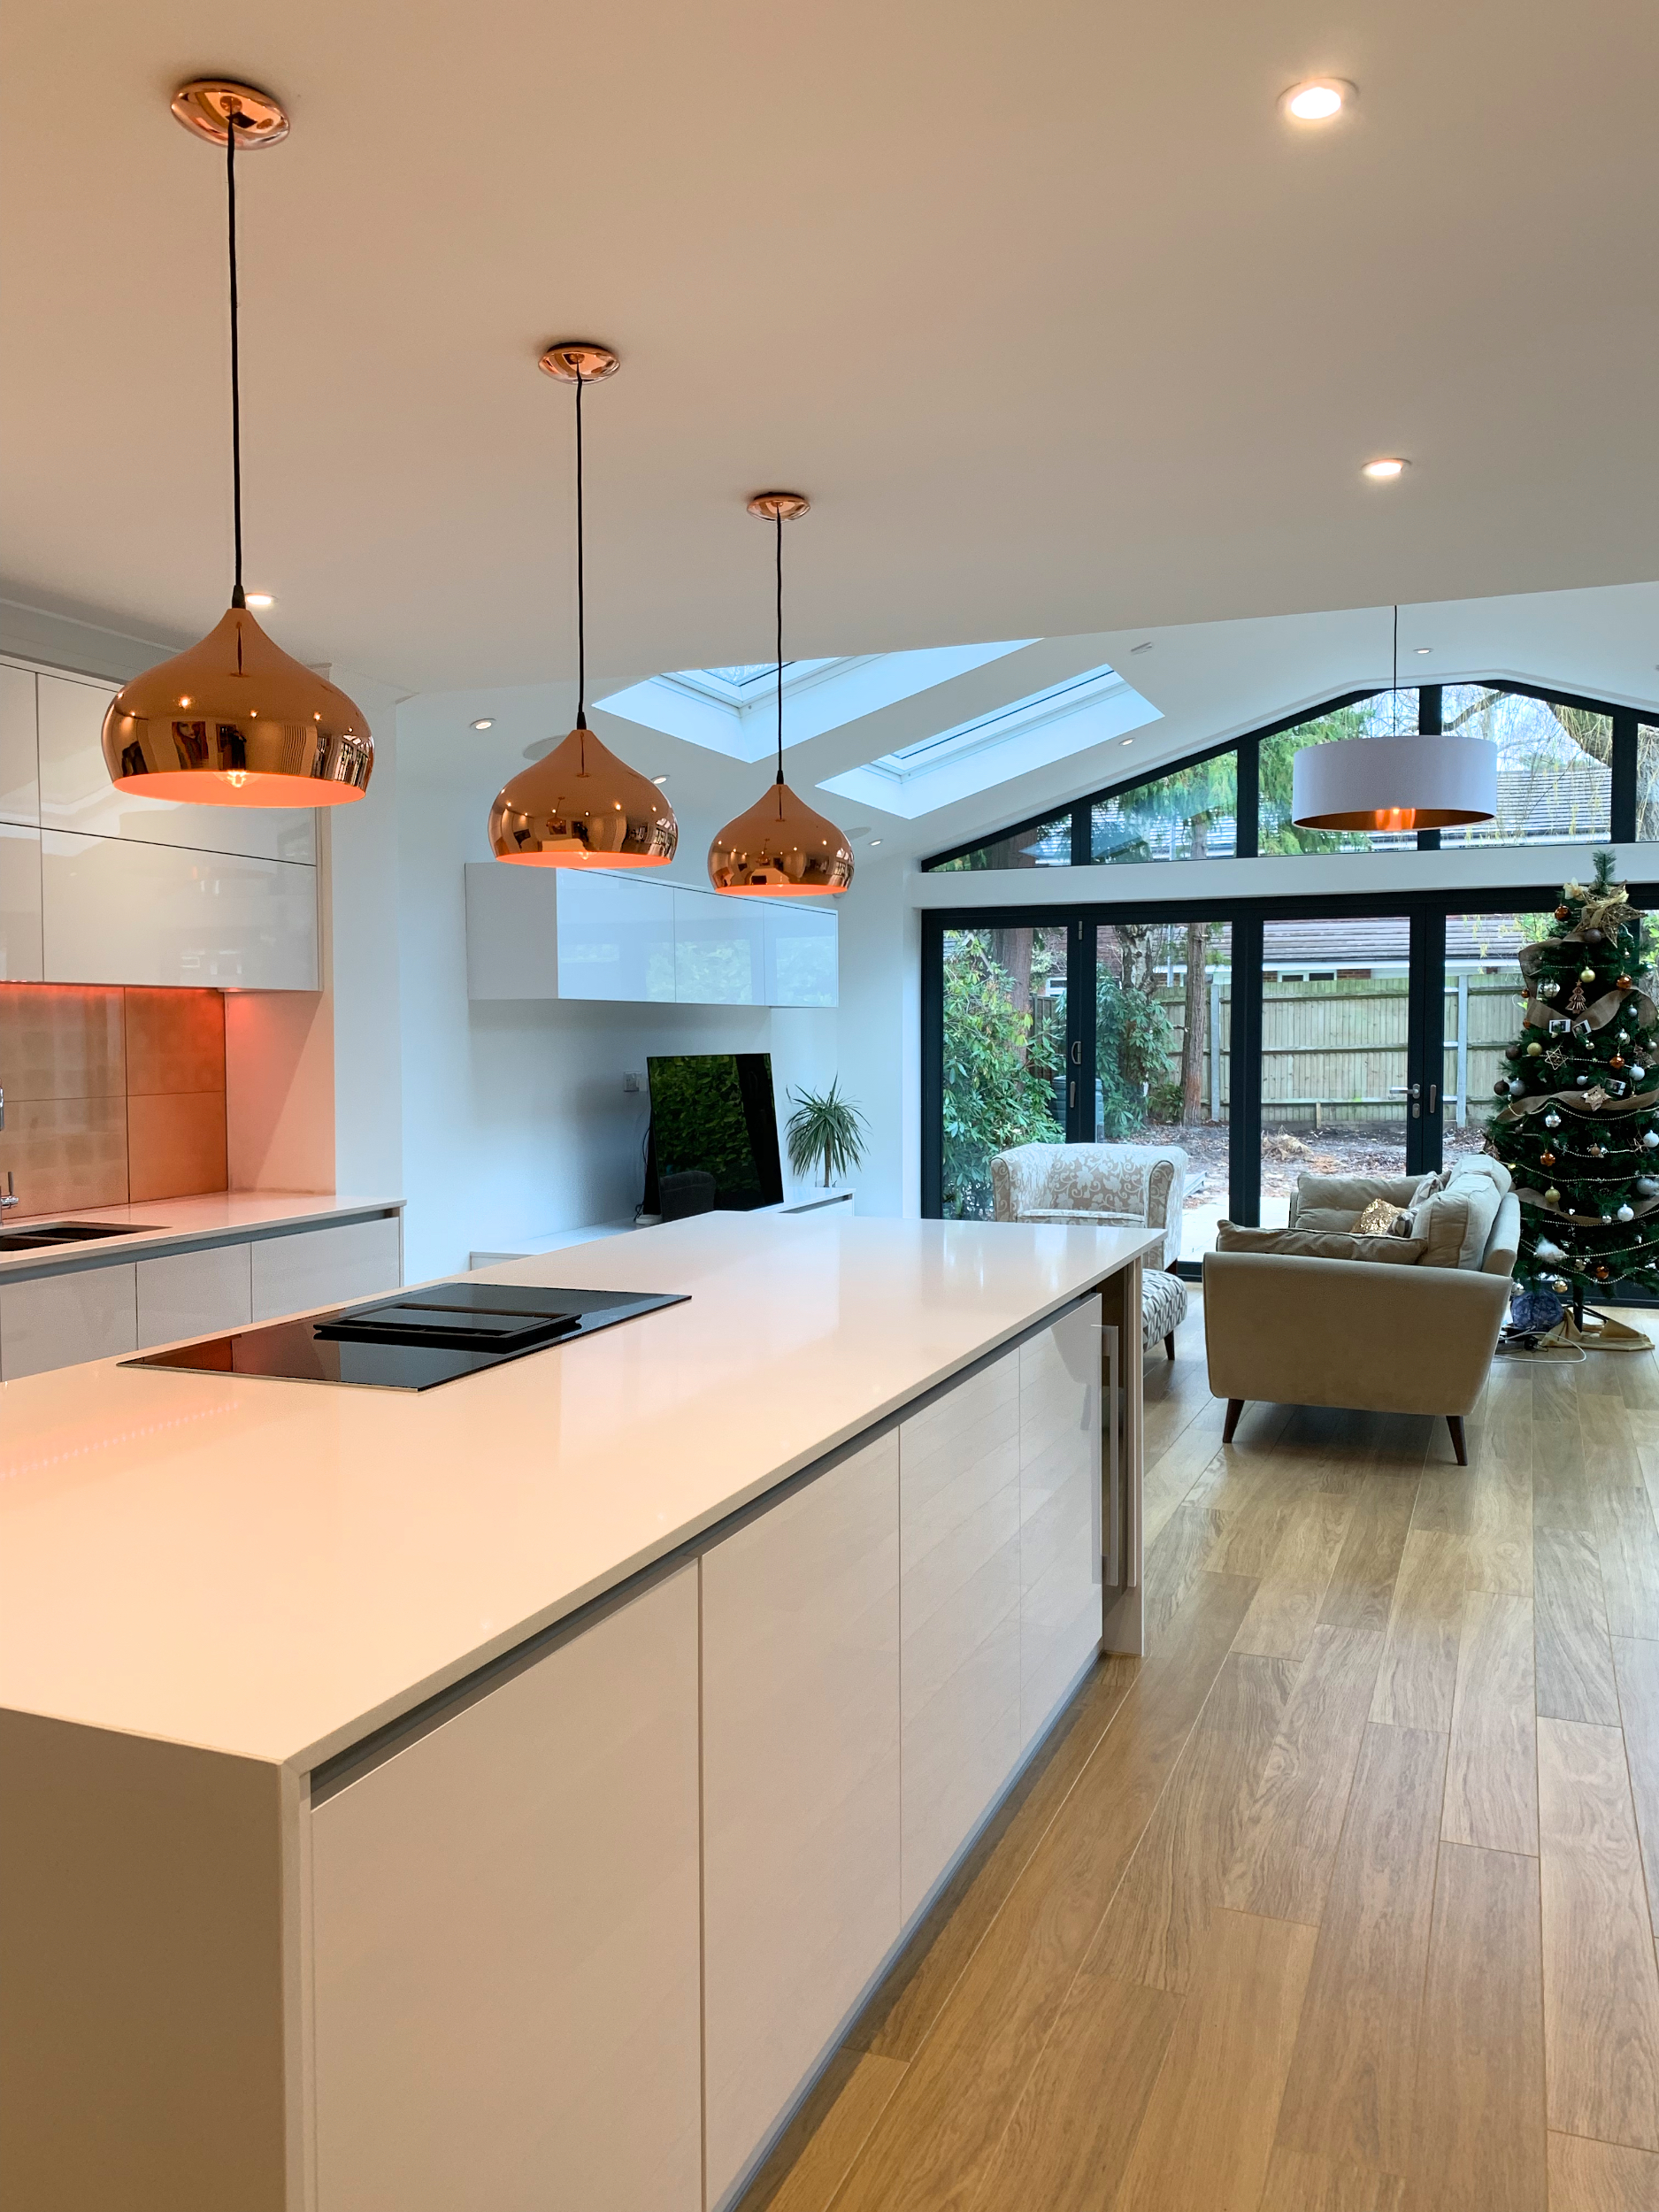 Home — Utopia Kitchens, The Bespoke Kitchen Co.